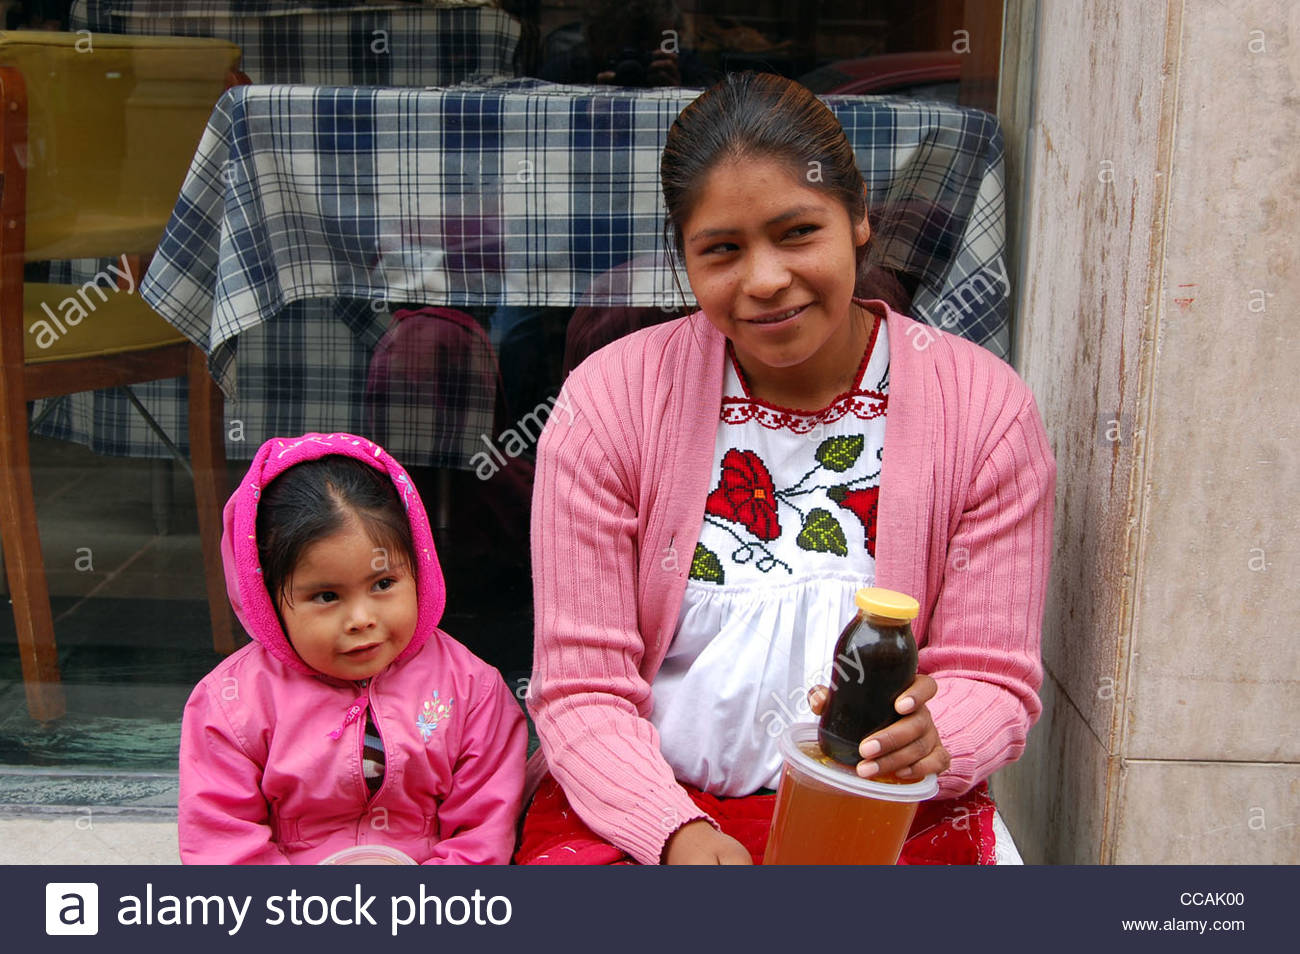 Street scene Mexican mother and daughter selling honey to passerby looking at camera. Social issues single parenting - Stock Image